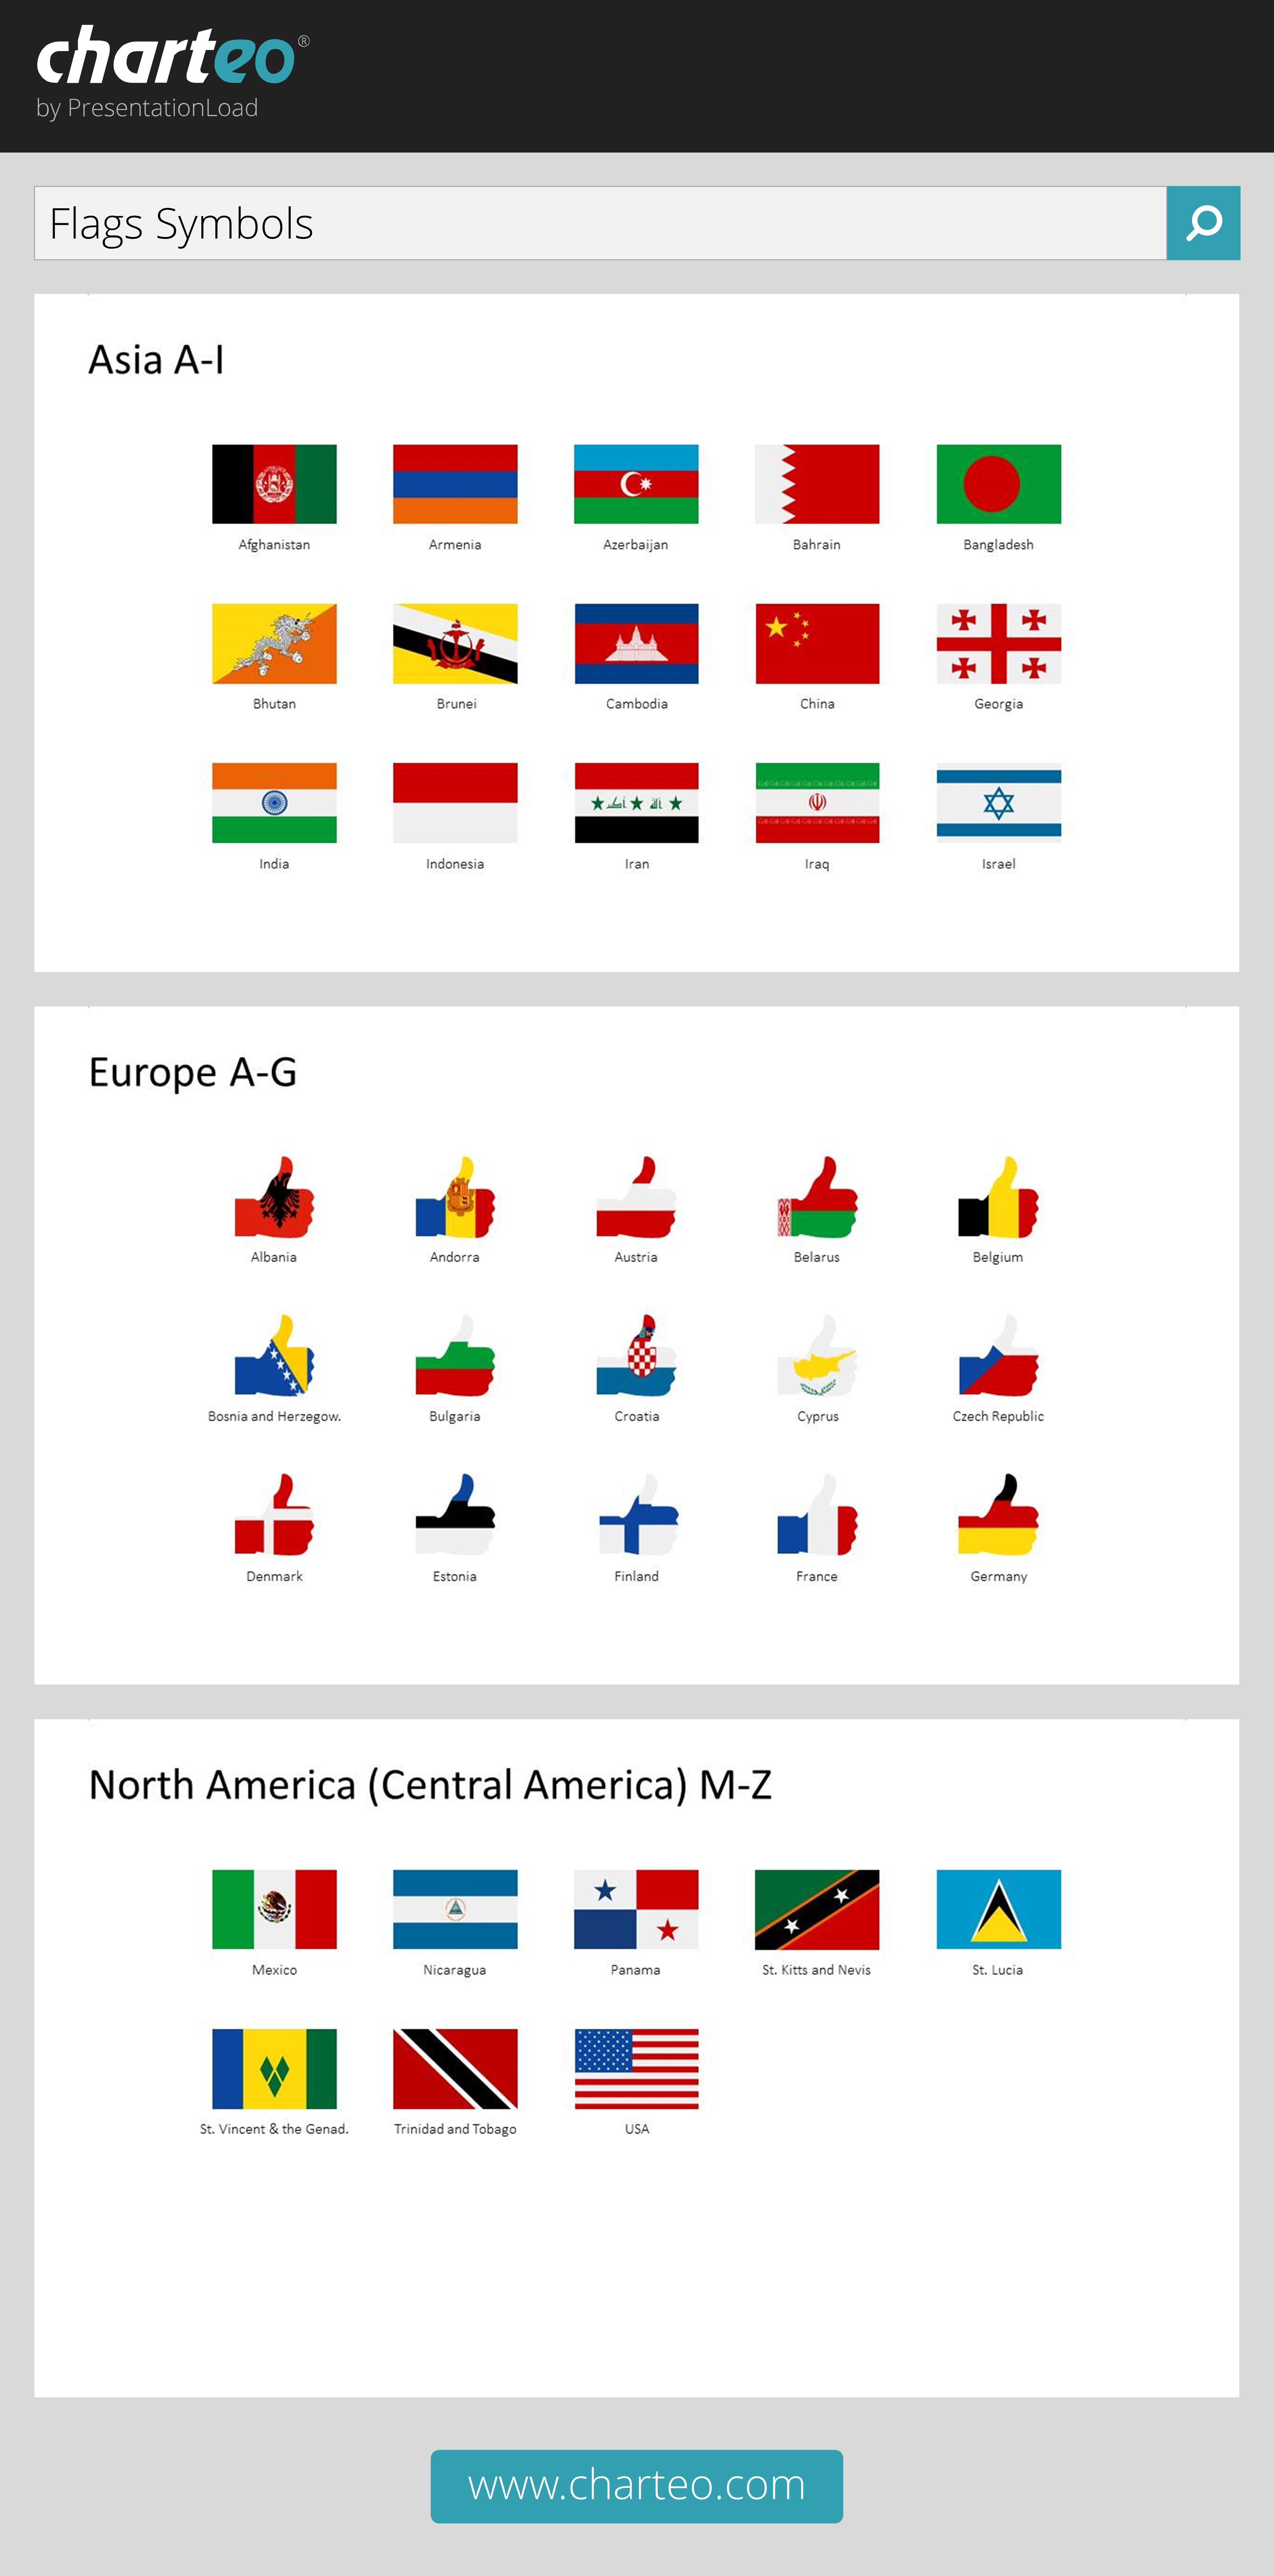 Visualize Your Presentation On International Business With Our Flag